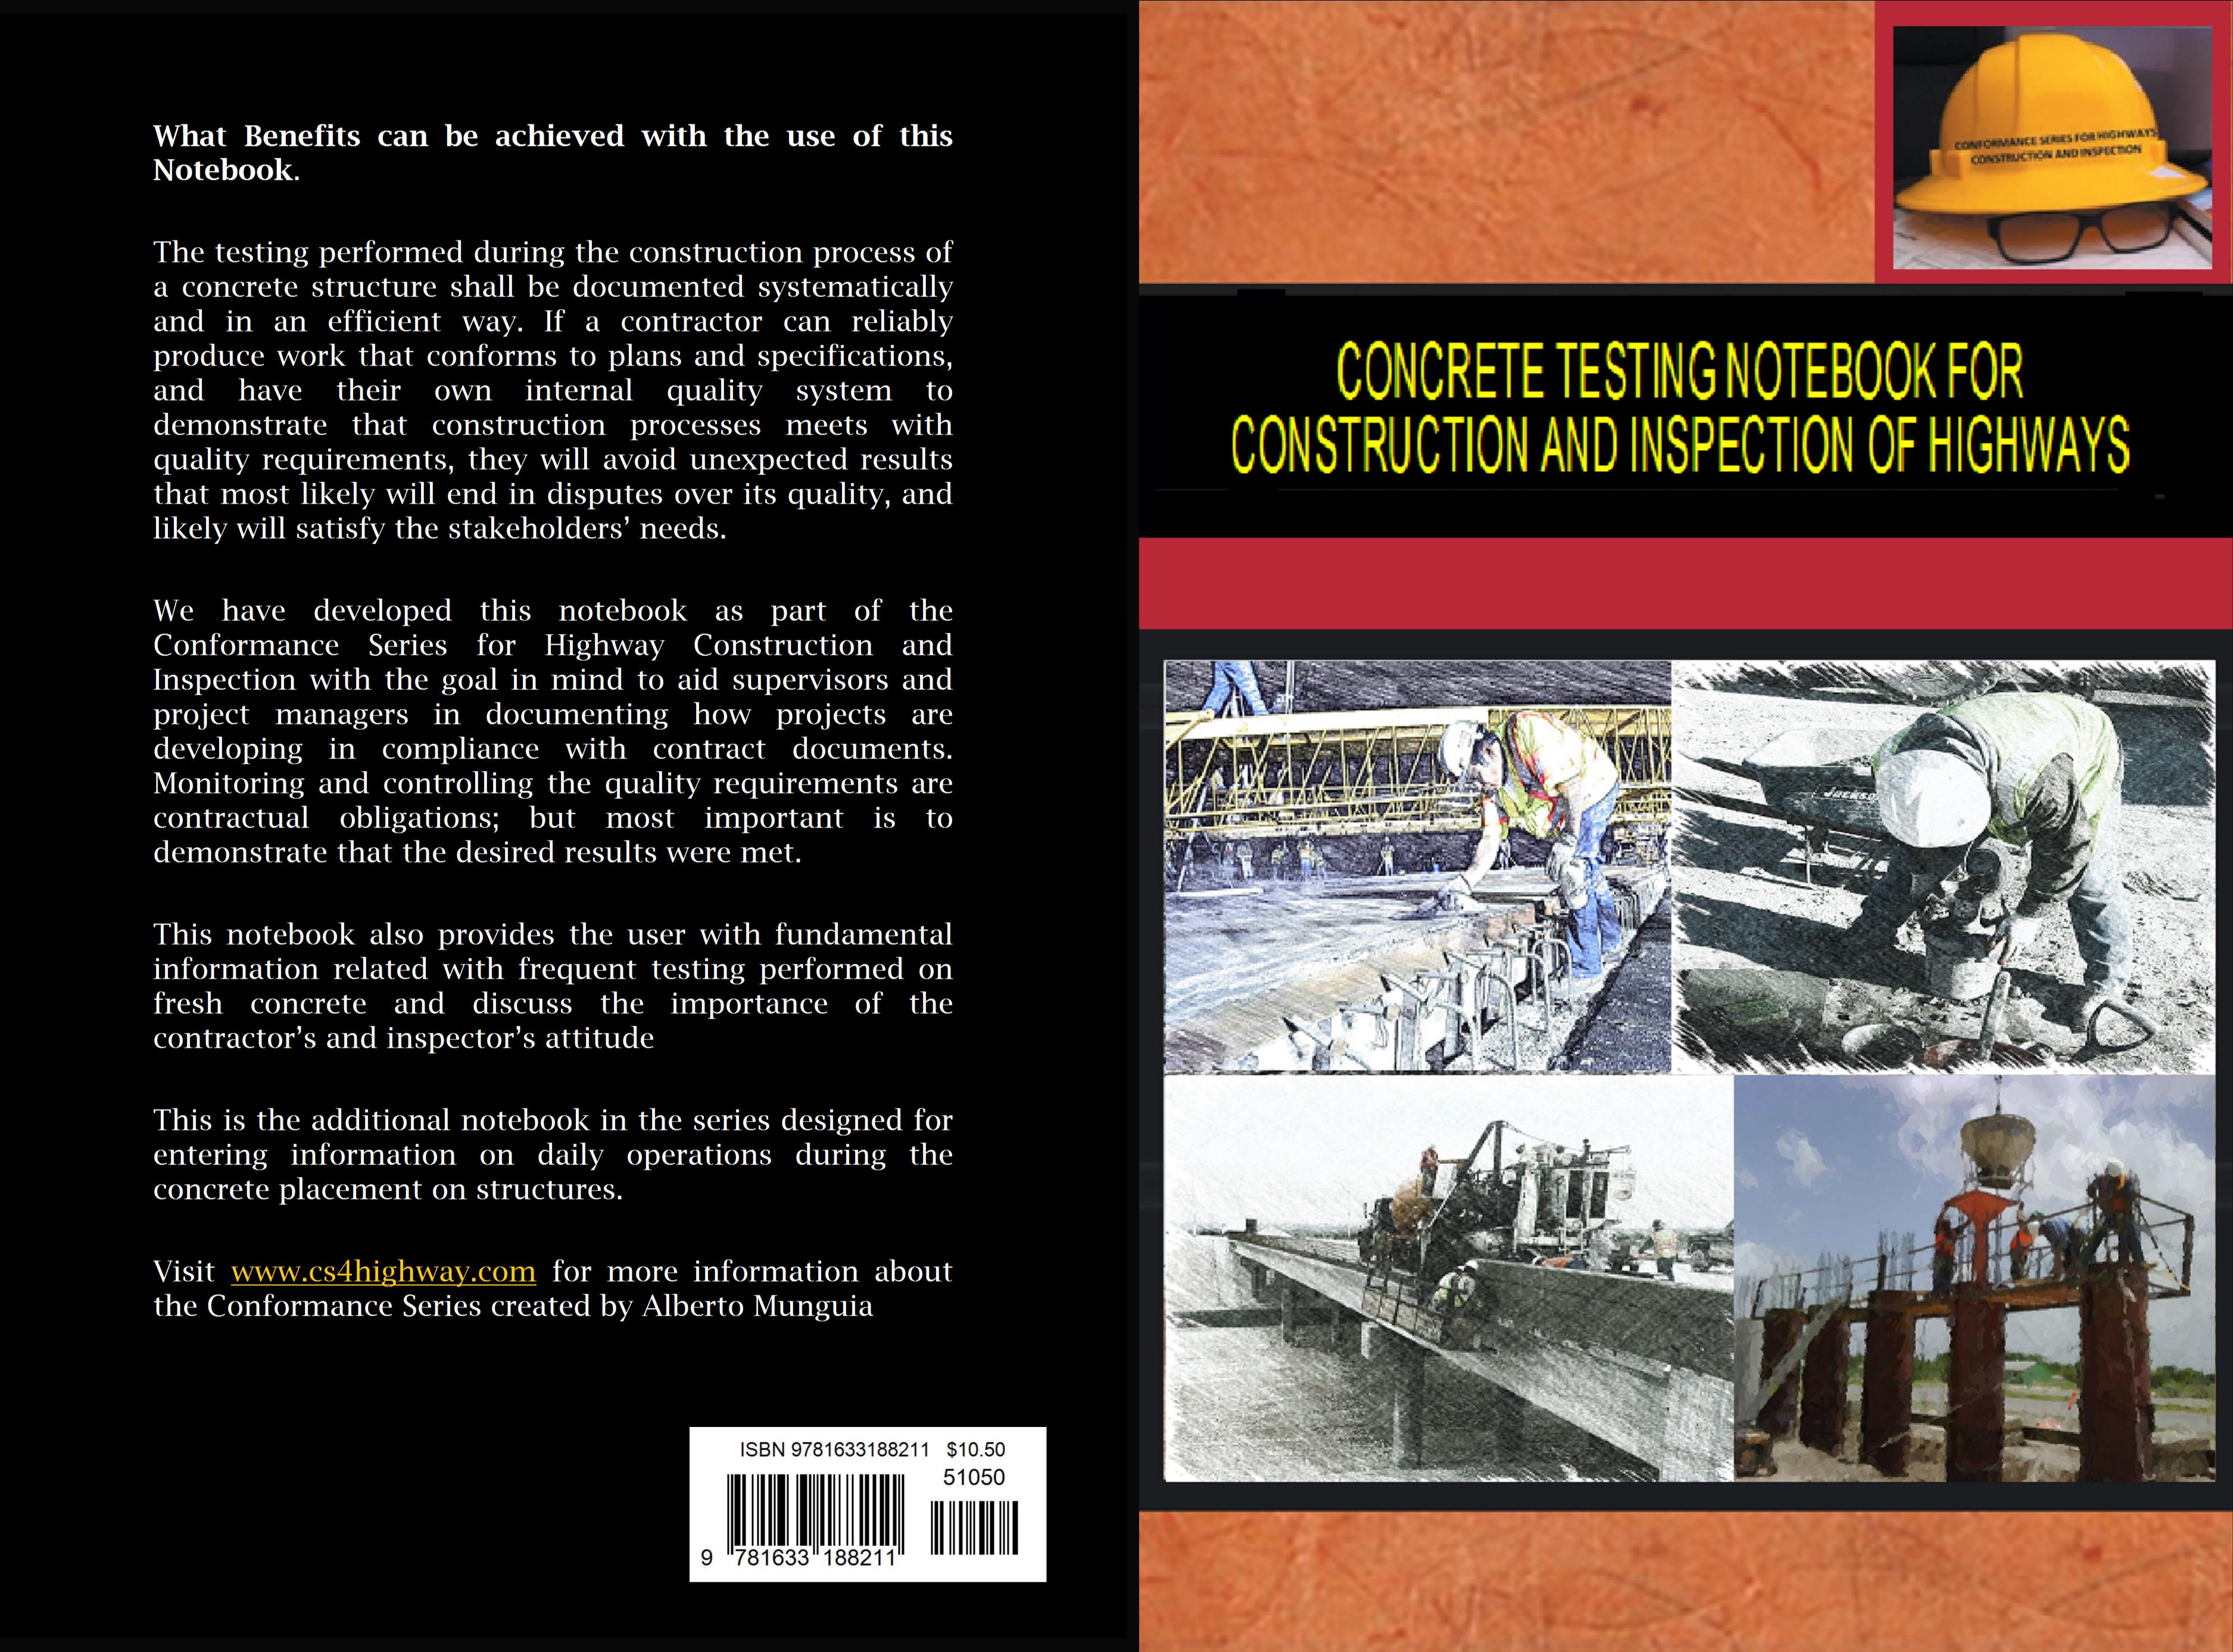 Concrete Testing Notebook for Construction and Inspection of Highways cover image